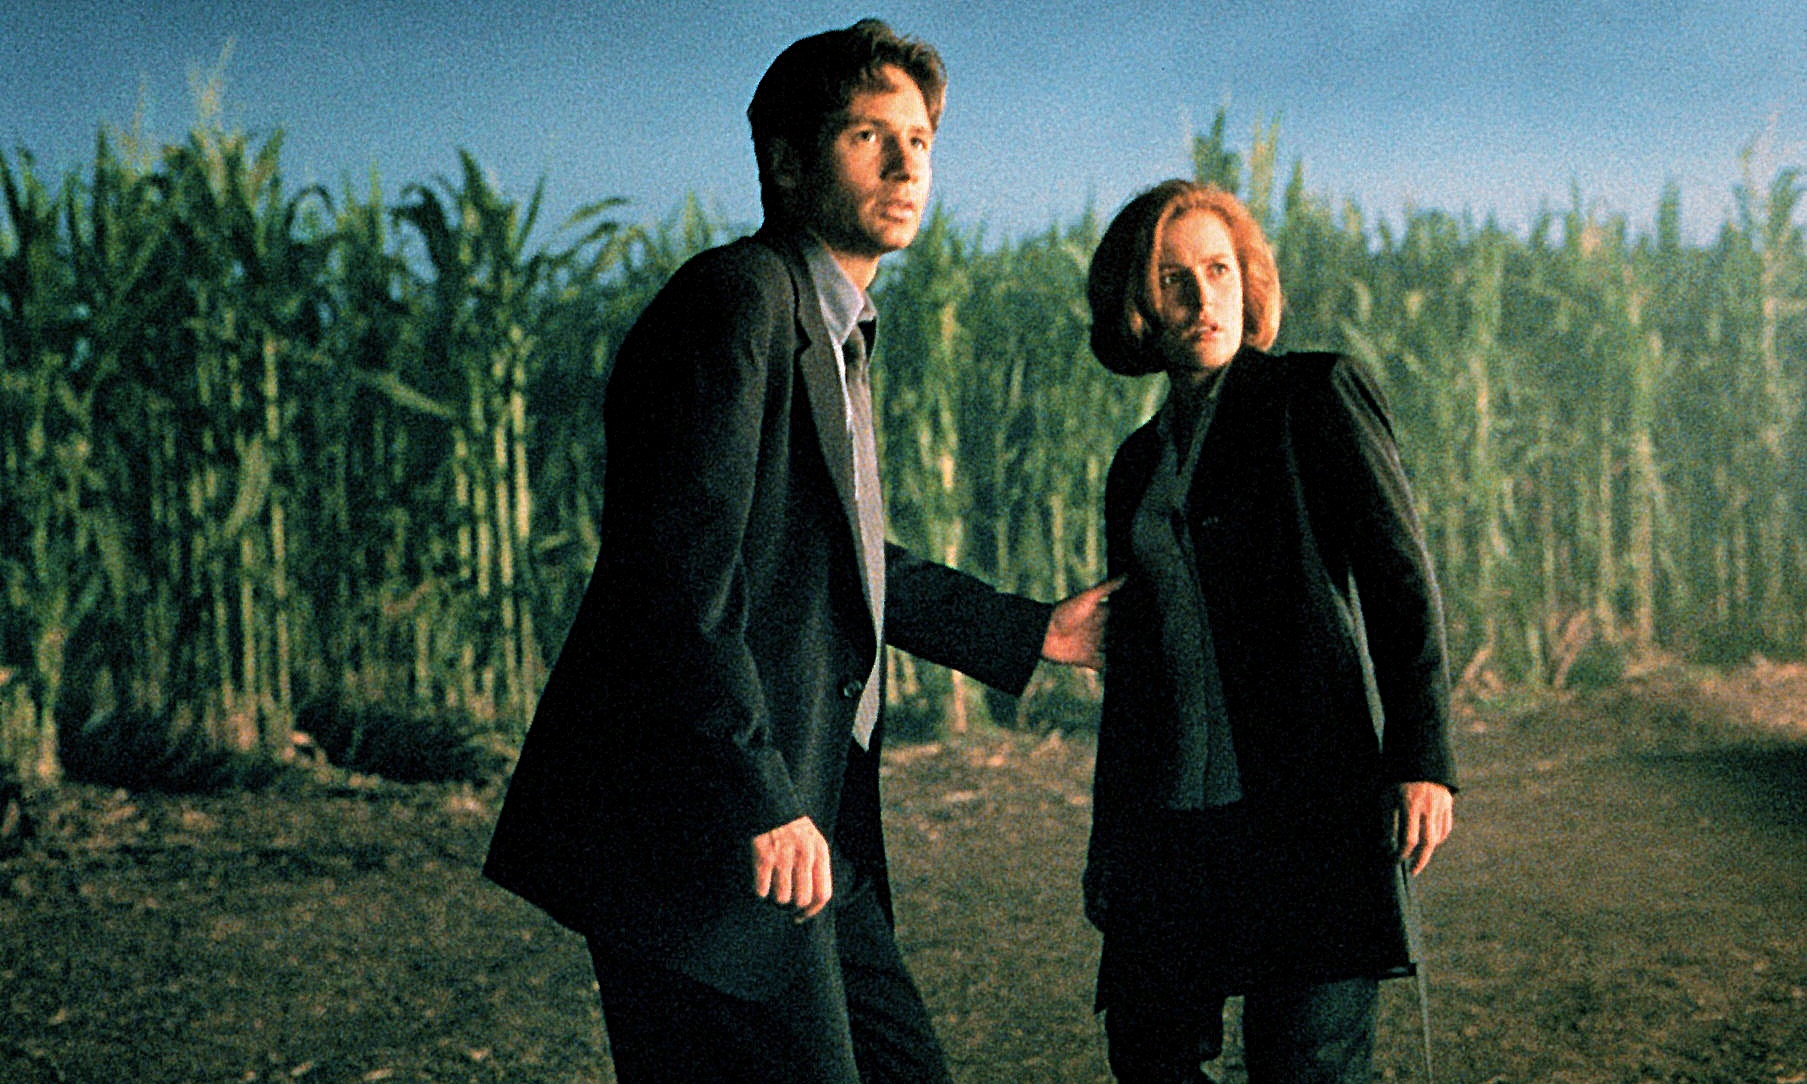 FBI agents Fox Mulder (David Duchovny) and Dana Scully (Gillian Anderson) in The X Files (1998)